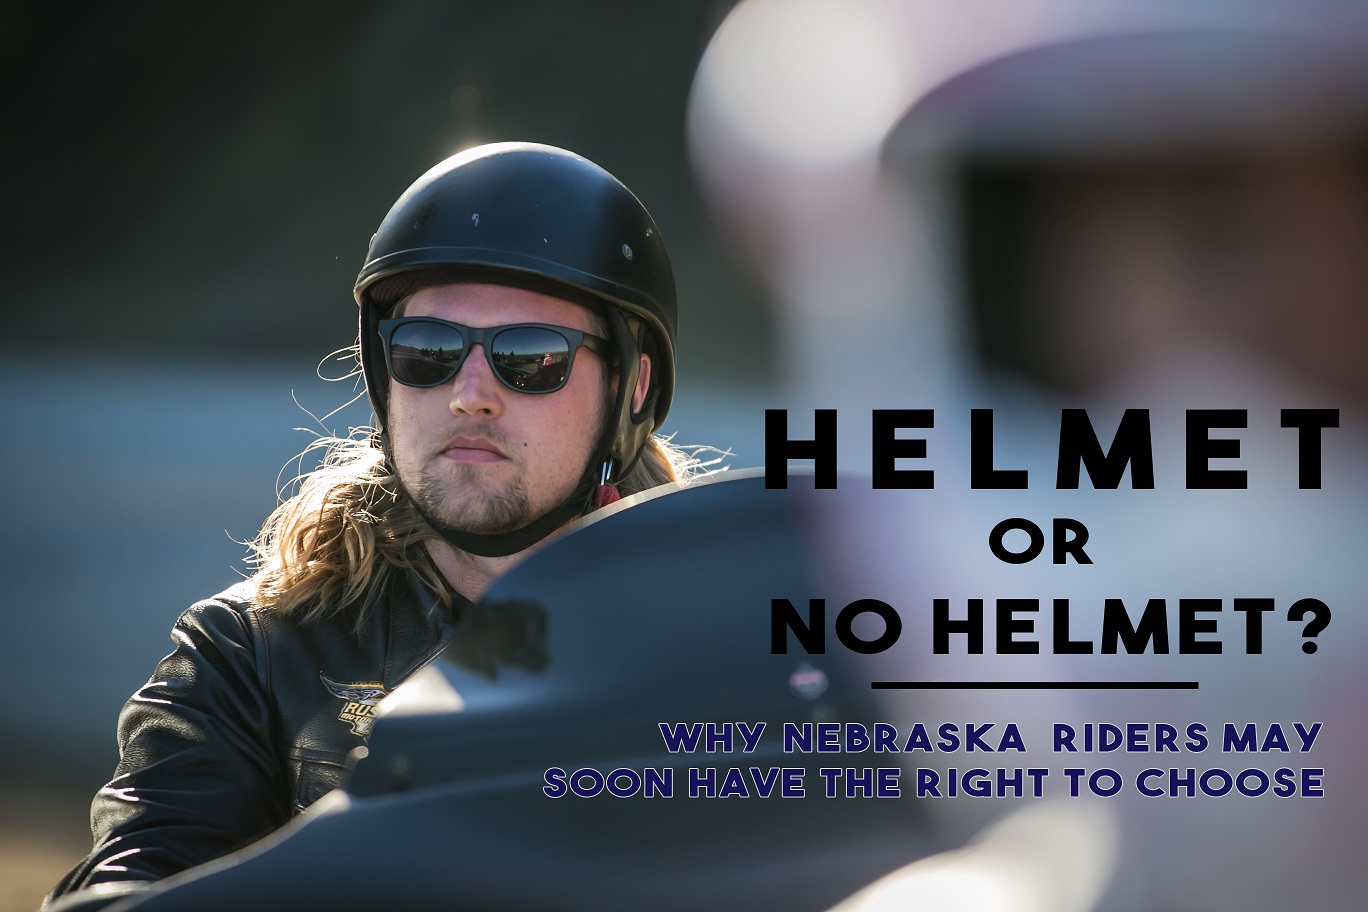 Helmets, Head Injuries and the Right to Choose